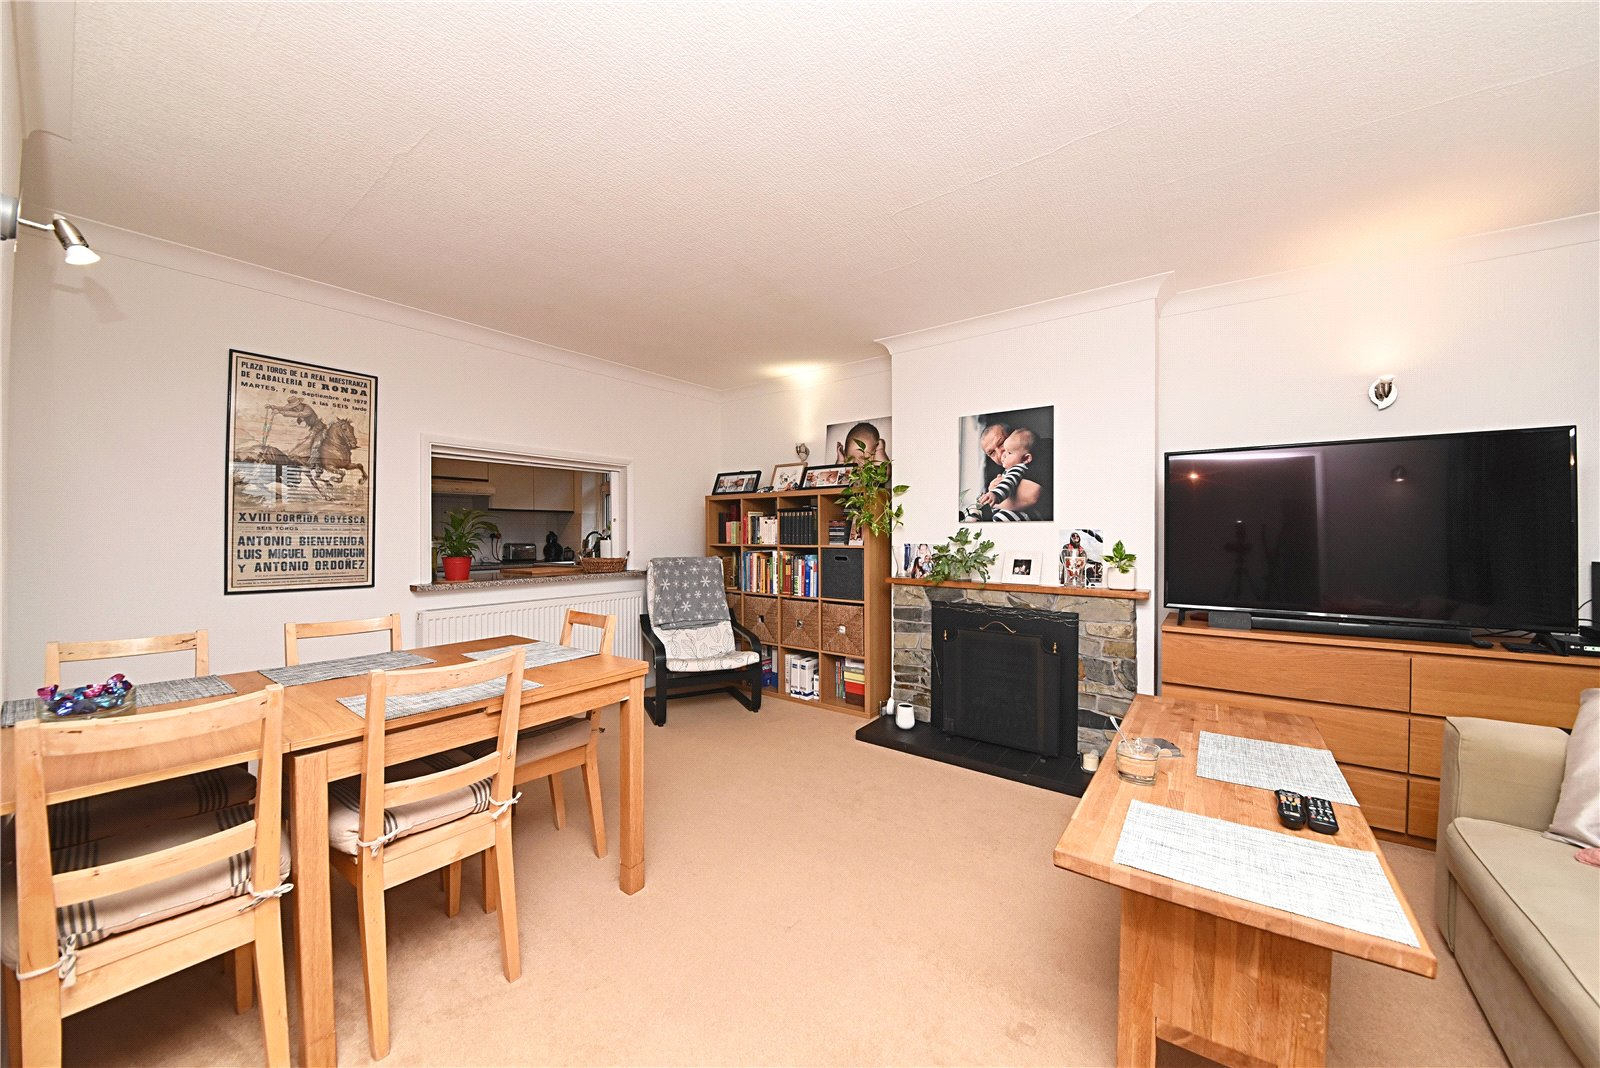 2 bed bungalow for sale in Barnet, EN4 9QT  - Property Image 2